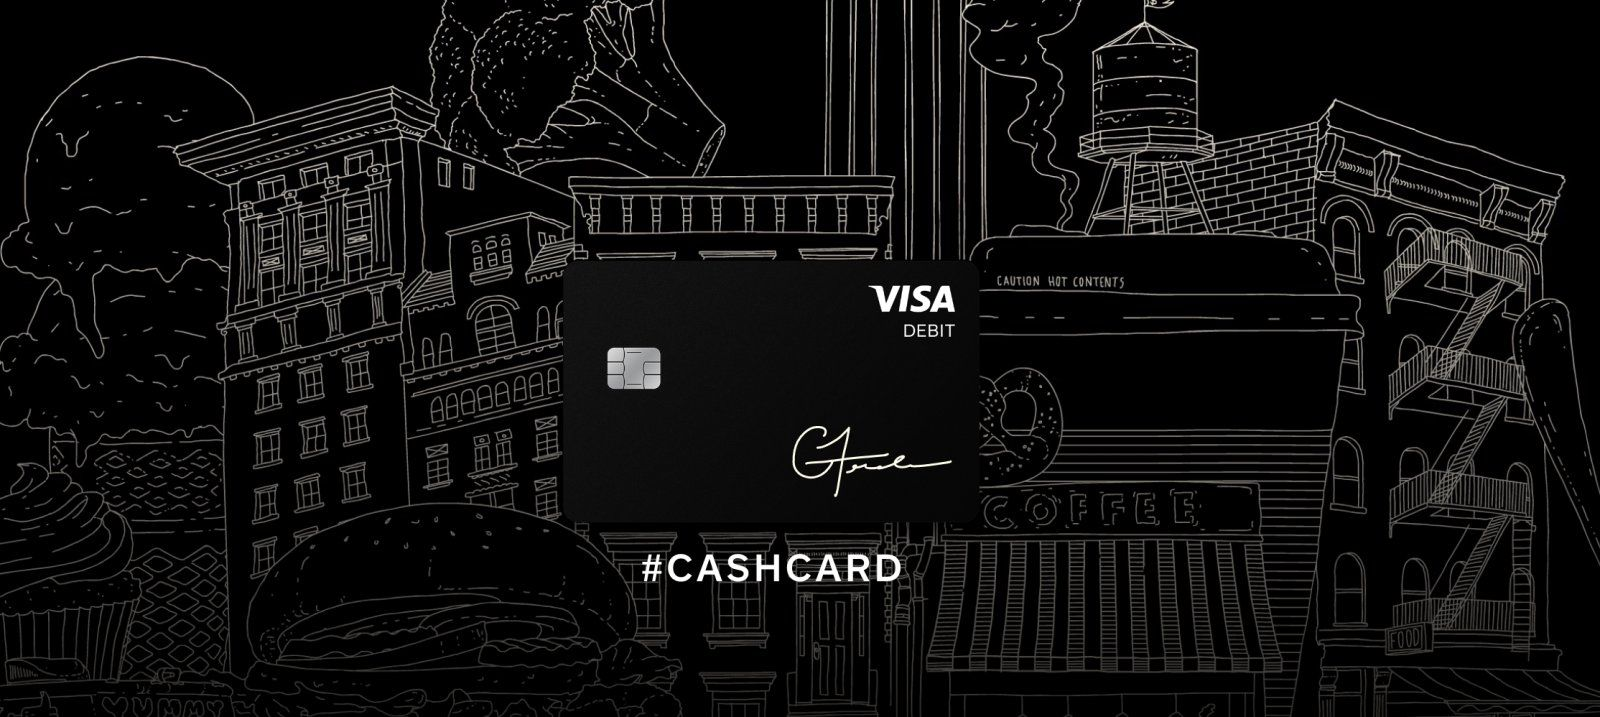 Square's personalized prepaid card is available to